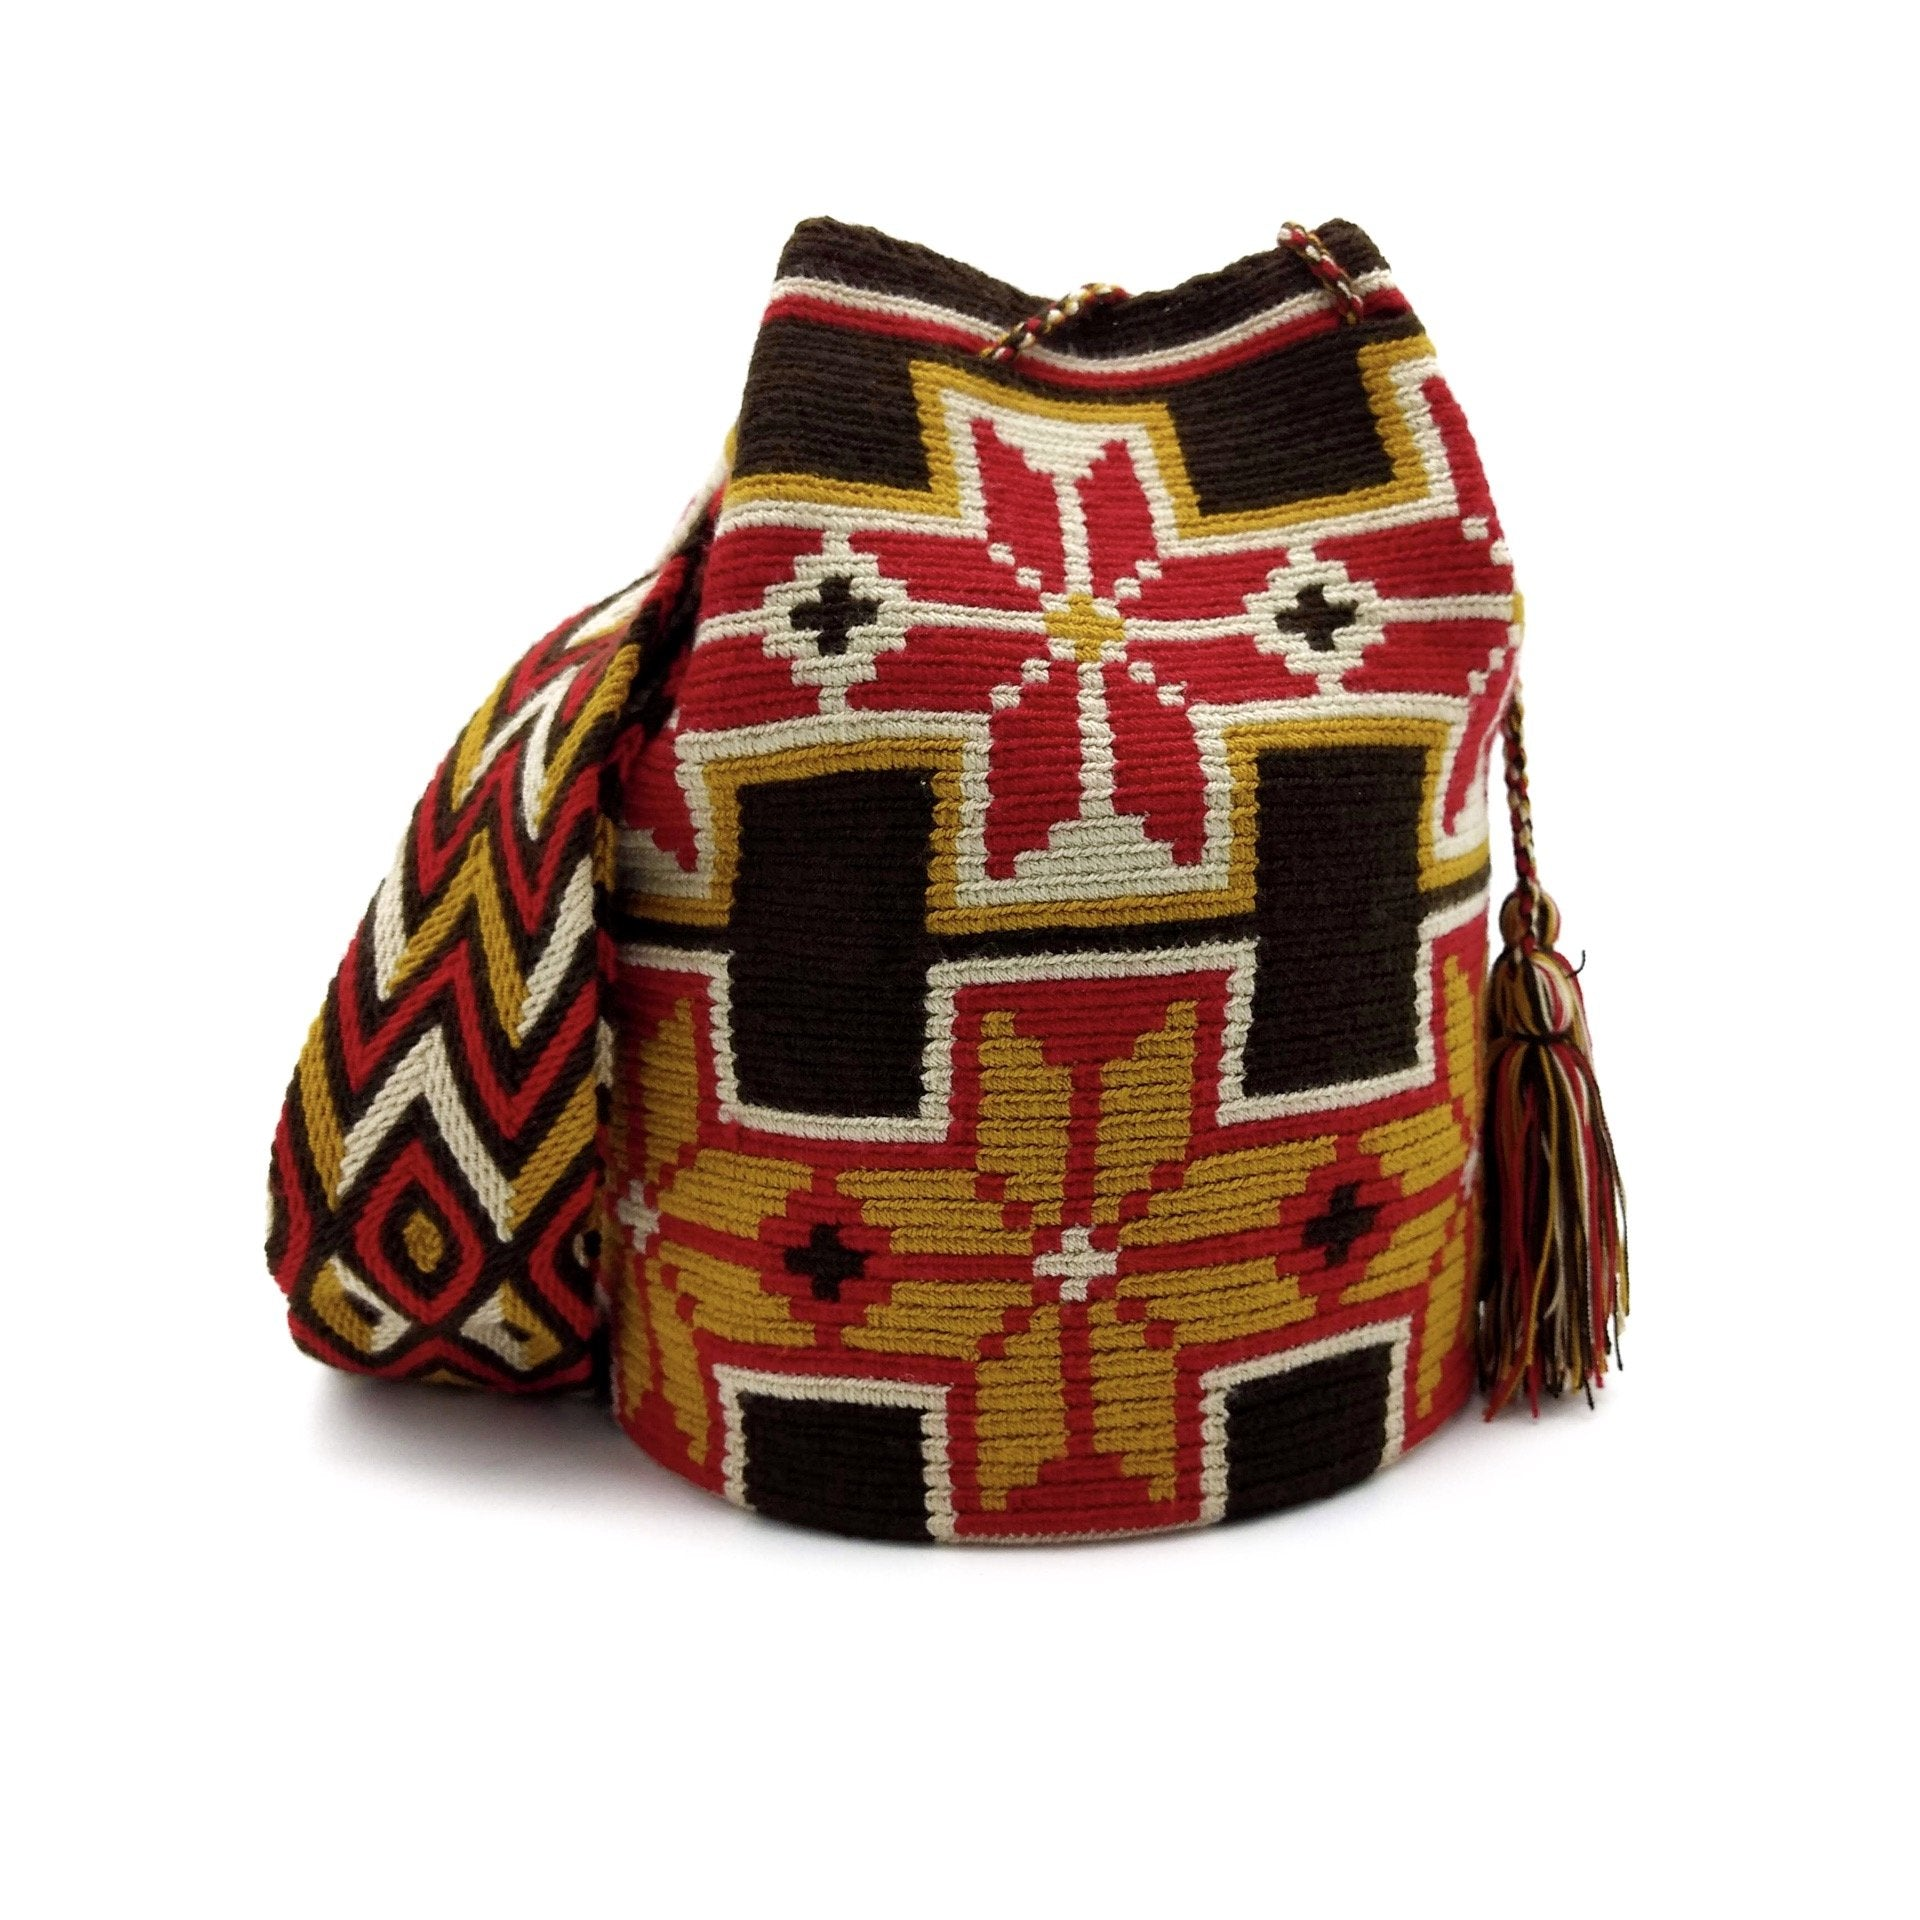 Front view of a beautiful Wayuu Mochila Bag with a great combination of spicy colors such as Amber, Red, Beige, and Dark-Brown.